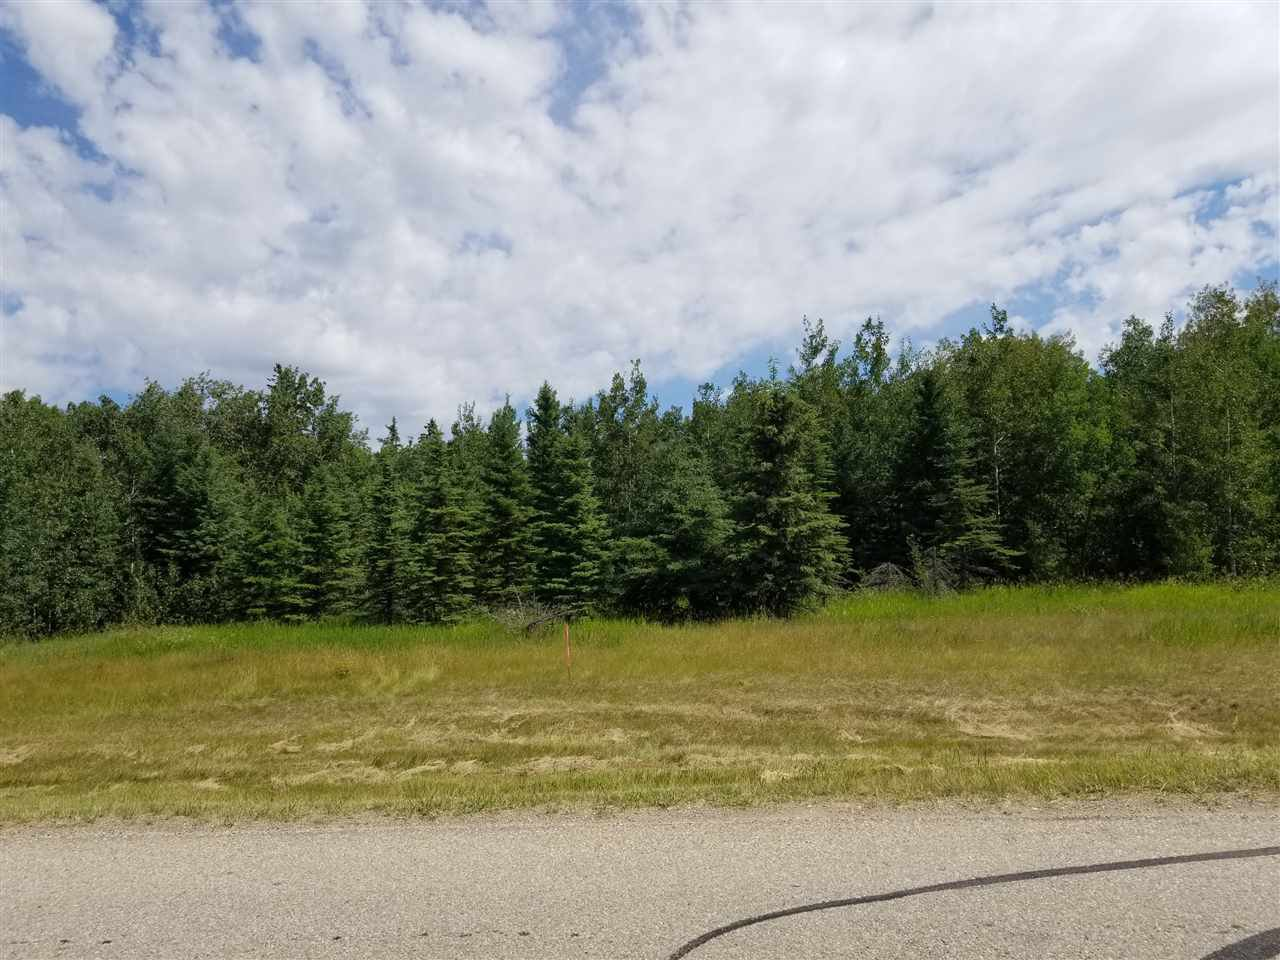 Main Photo: #43-25527- Twp Road 511A Road: Rural Parkland County Rural Land/Vacant Lot for sale : MLS®# E4138090